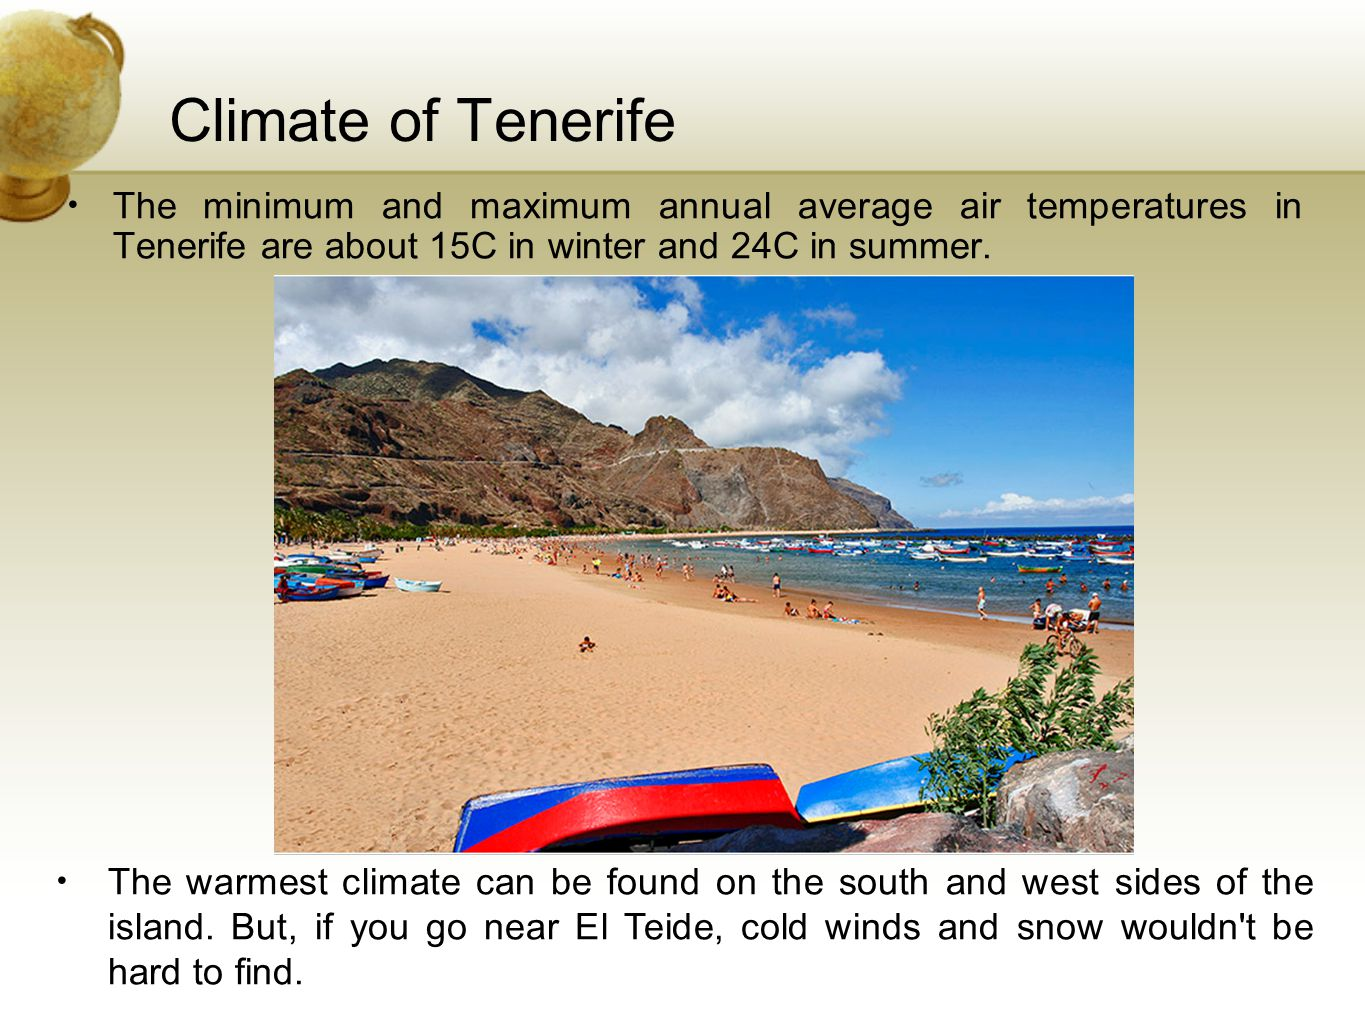 Climate of Tenerife The minimum and maximum annual average air temperatures in Tenerife are about 15C in winter and 24C in summer.